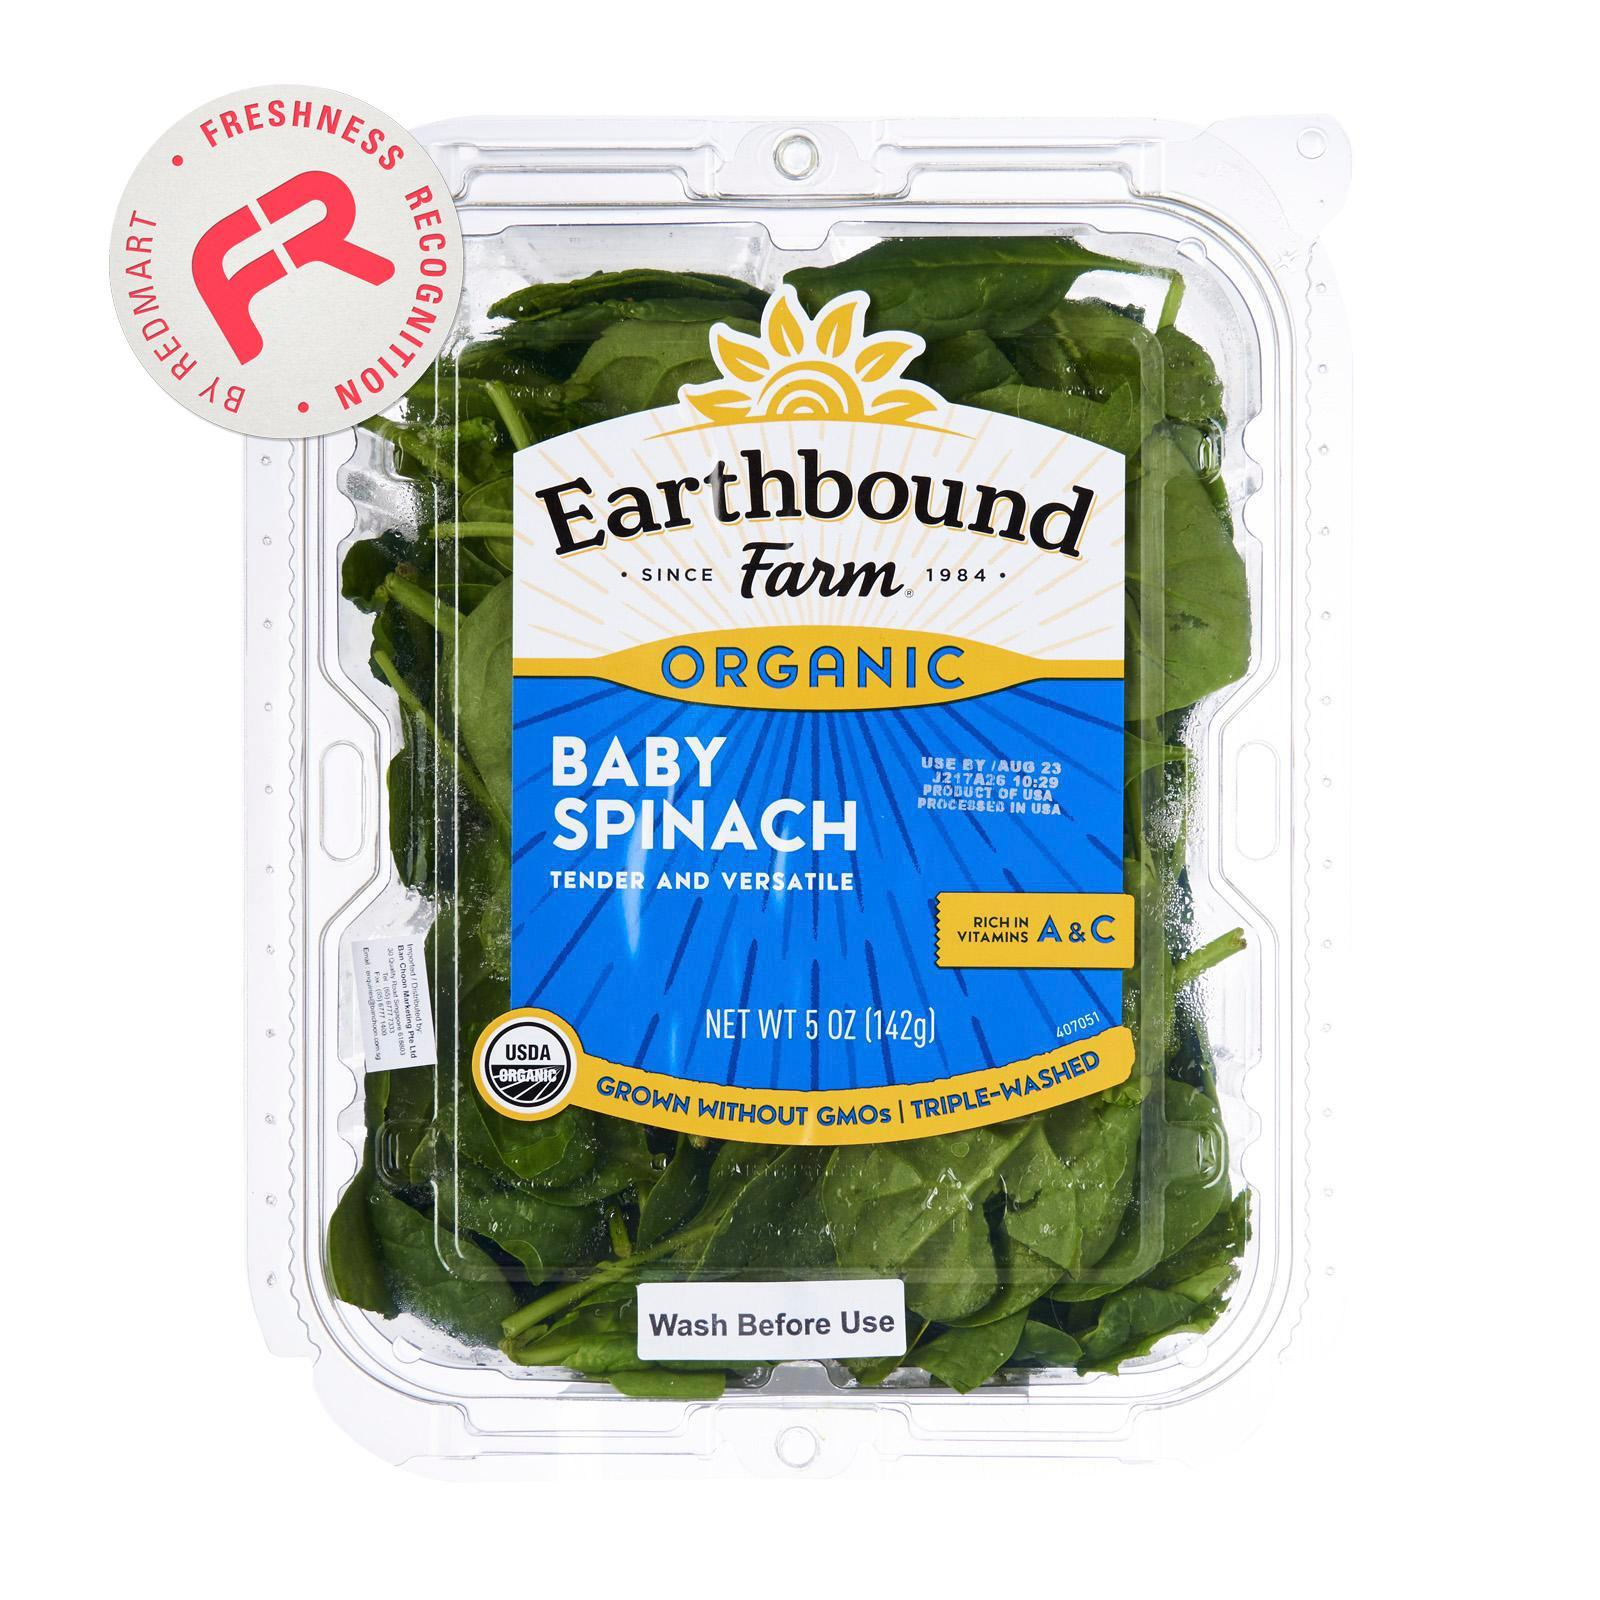 Earthbound Organic Baby Spinach By Redmart.